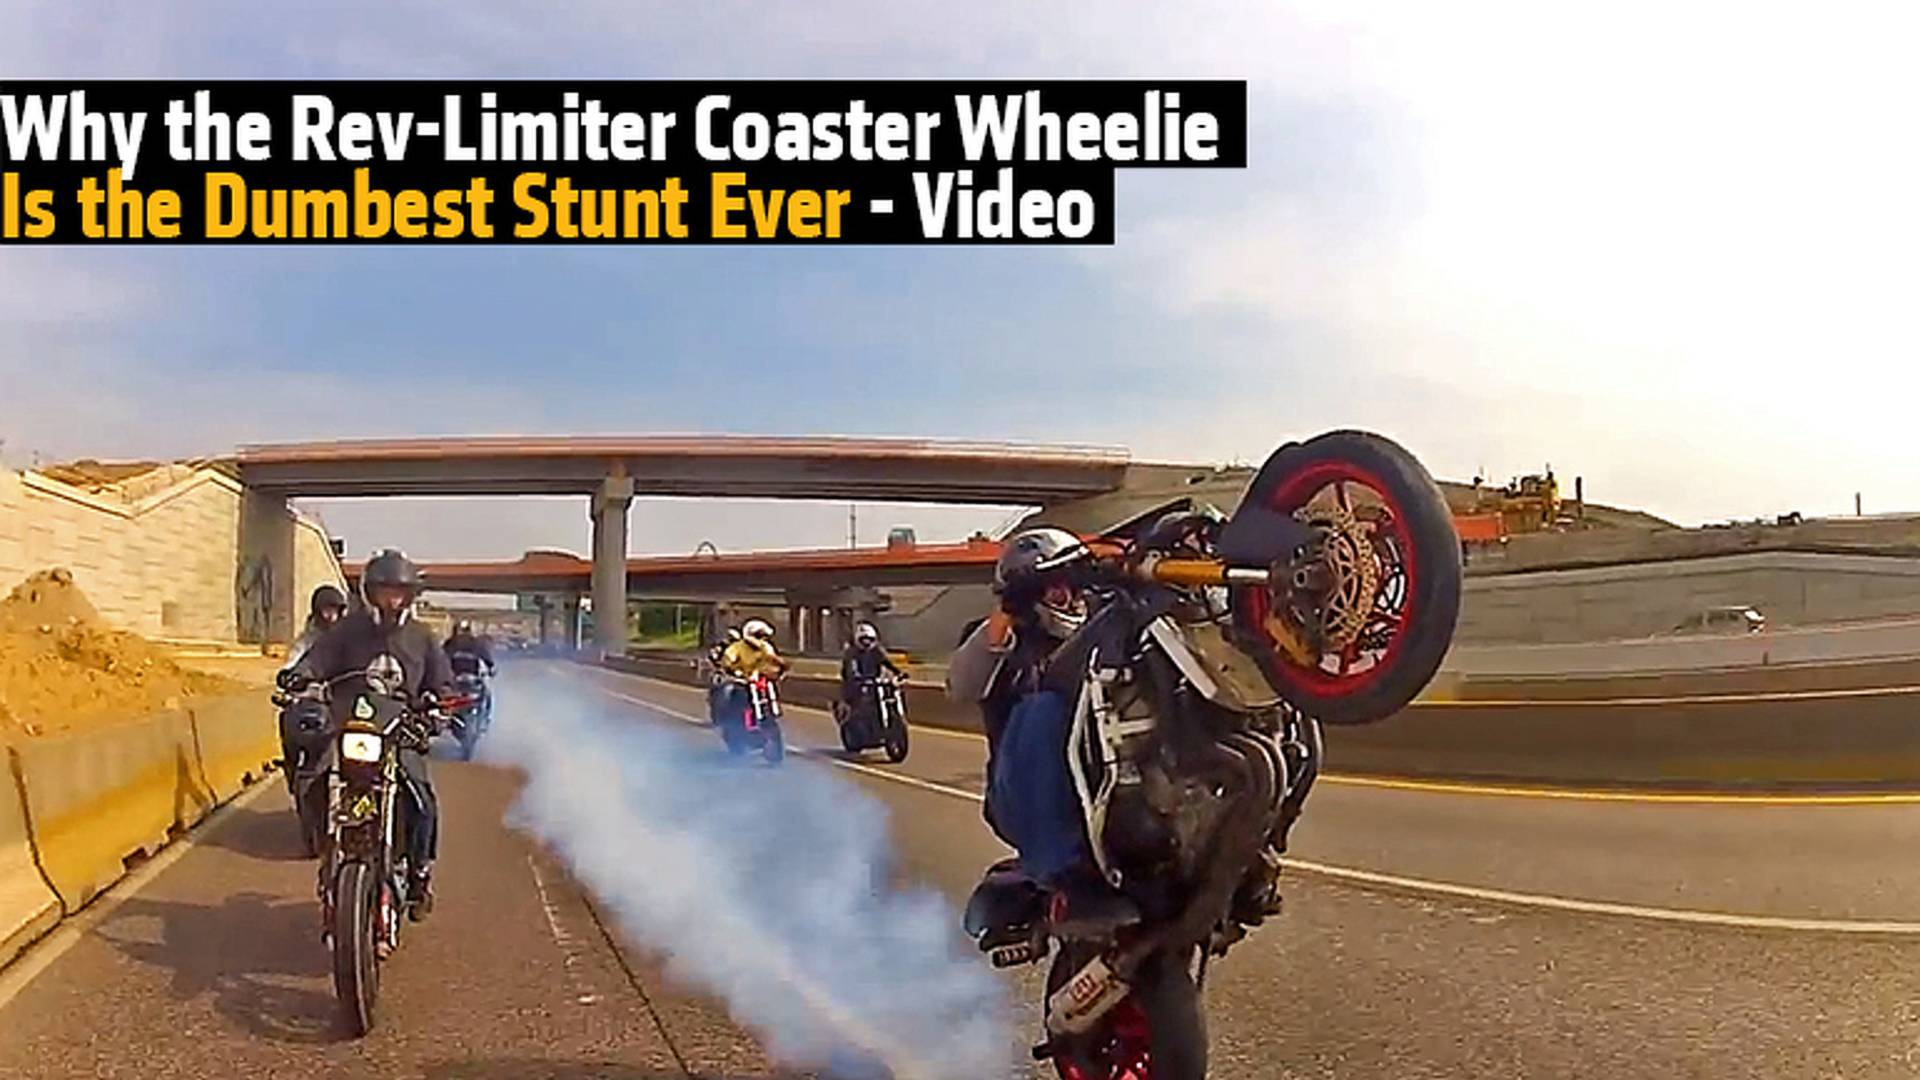 Why the Rev-Limiter Coaster Wheelie Is the Dumbest Stunt